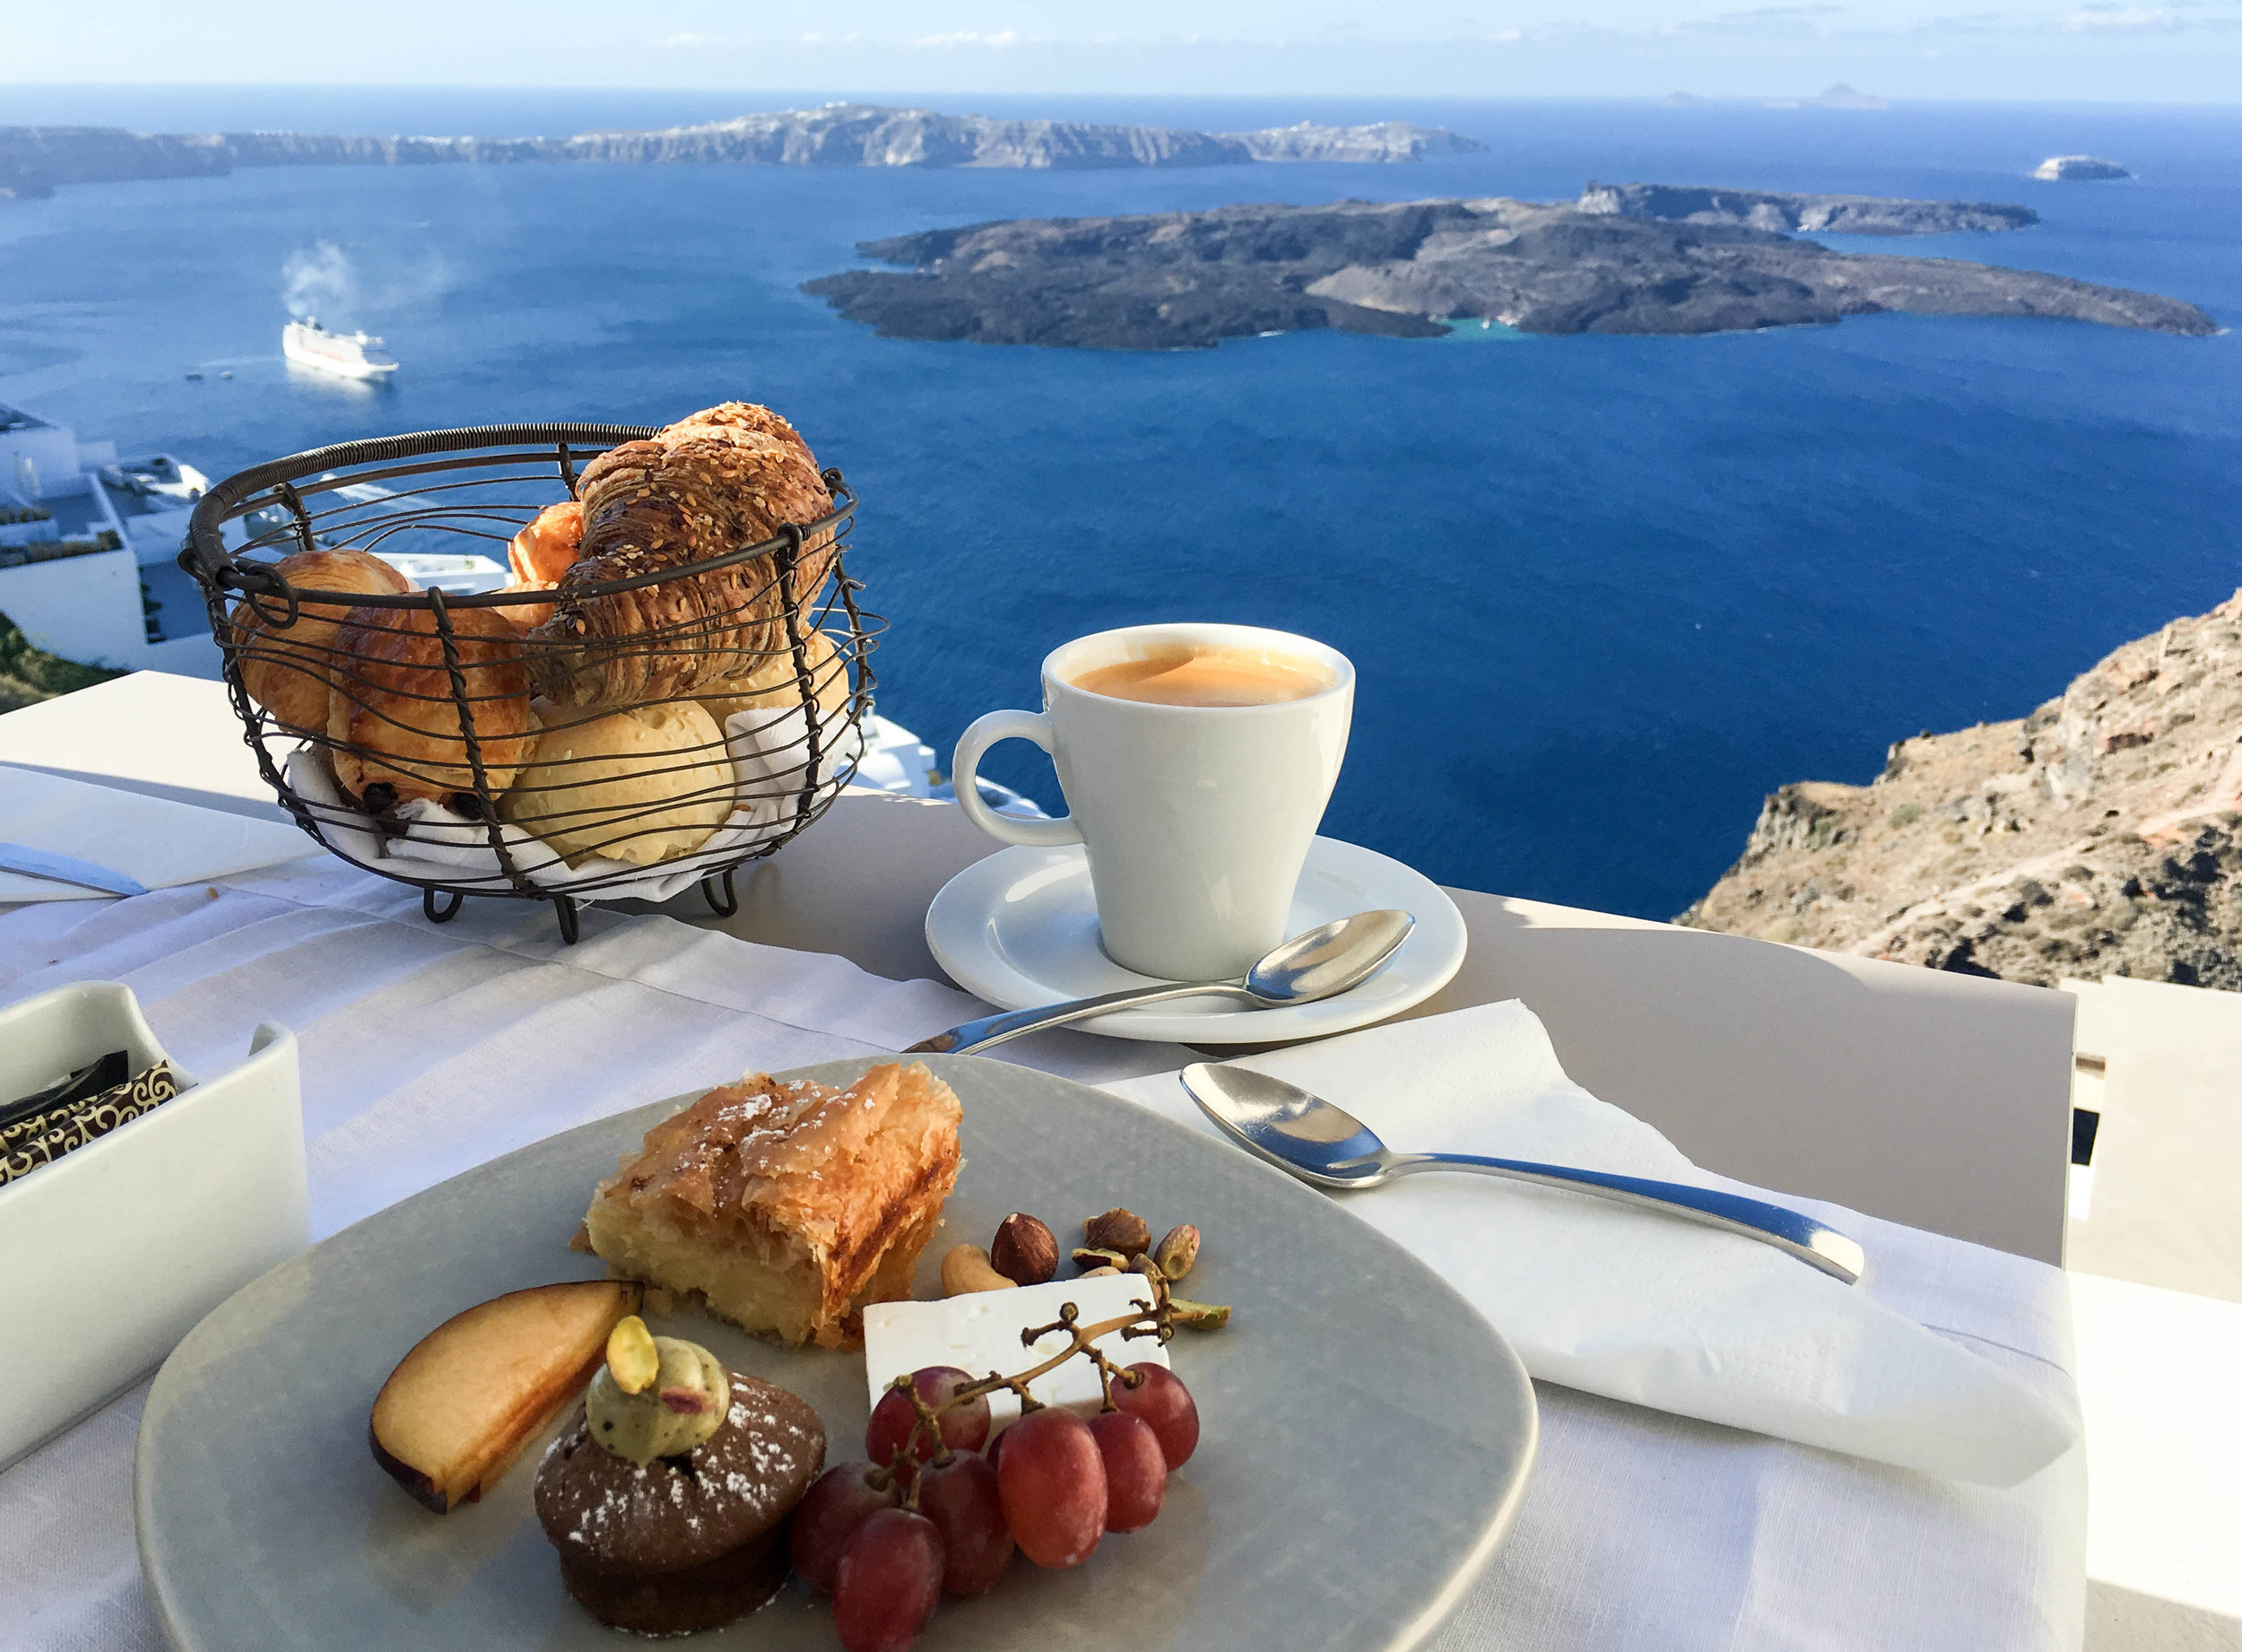 Breakfast with a view at Kapari Natural Resort, Santorini, Greece (note the aforementioned seeded croissant!)